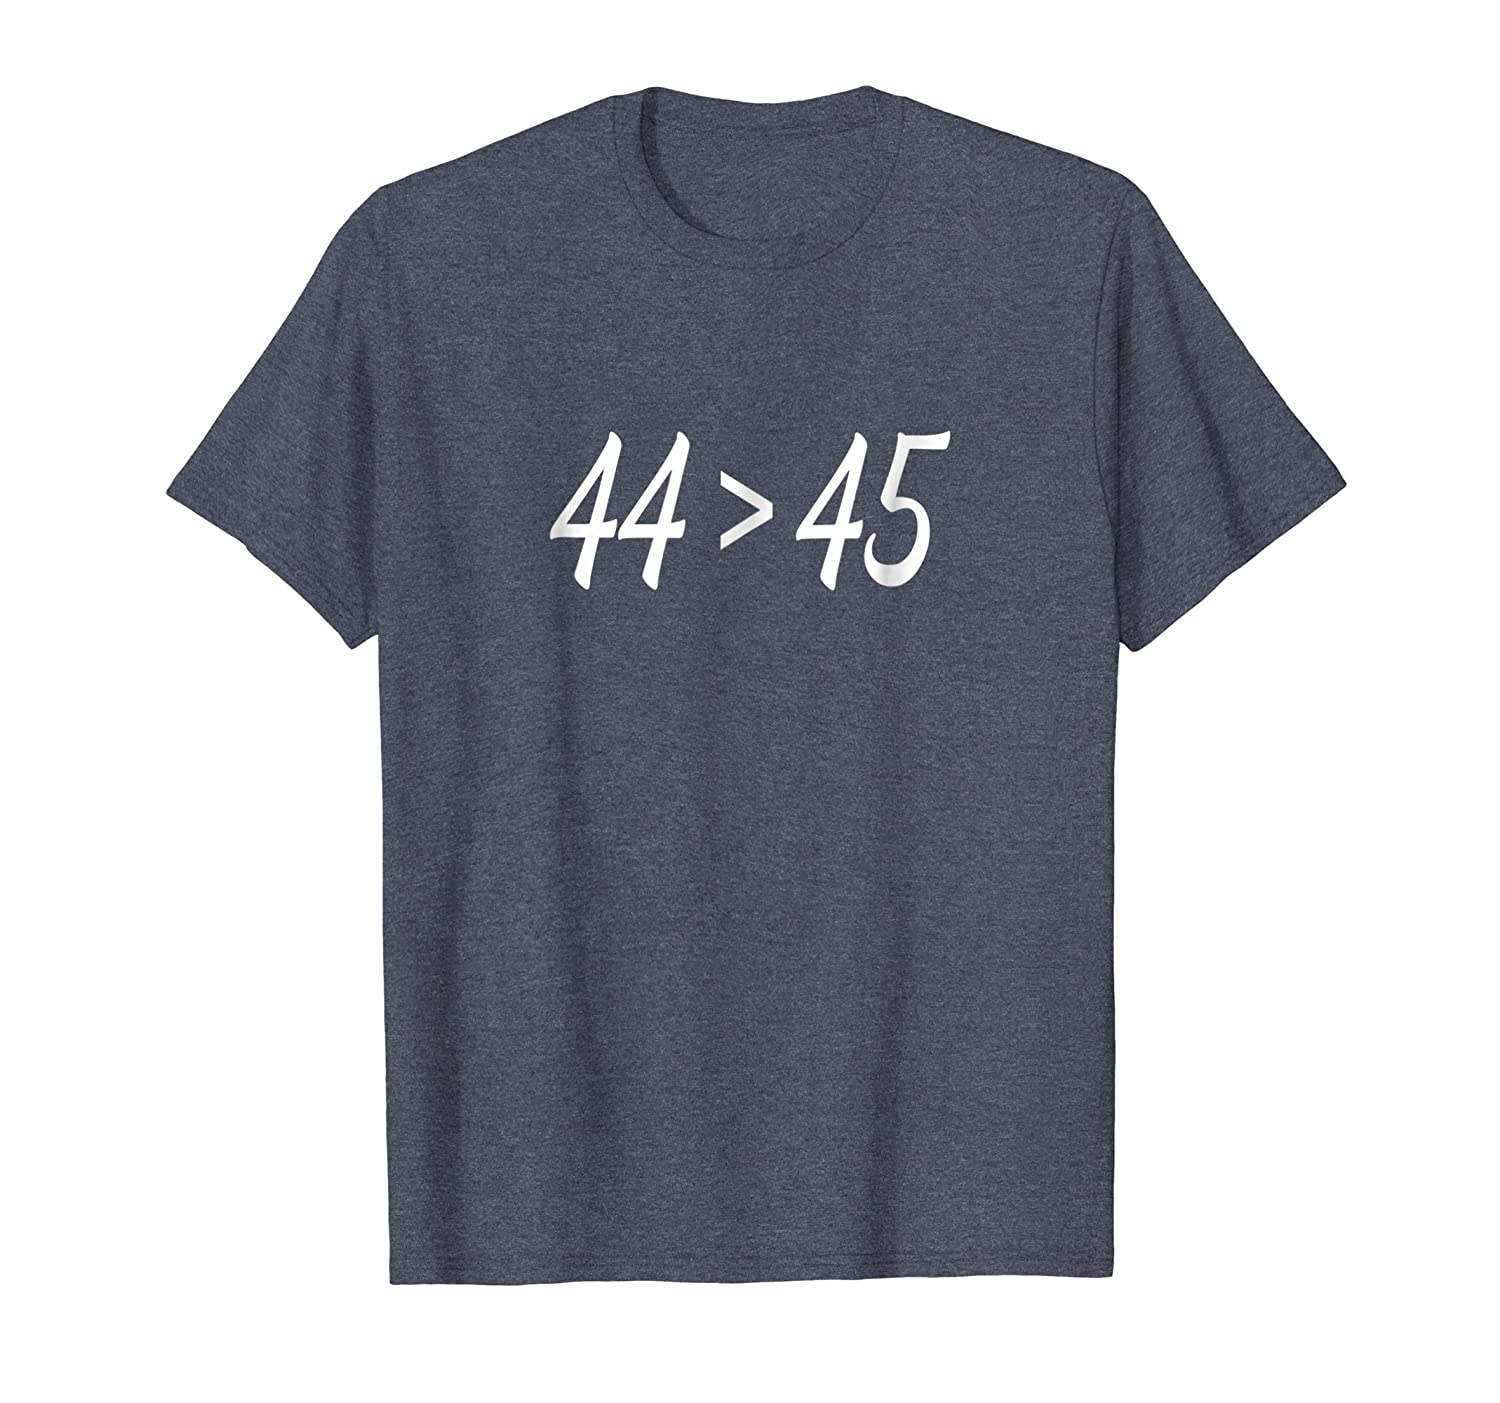 44 > 45, The 44th President is Greater Than The 45th - Shirt-fa